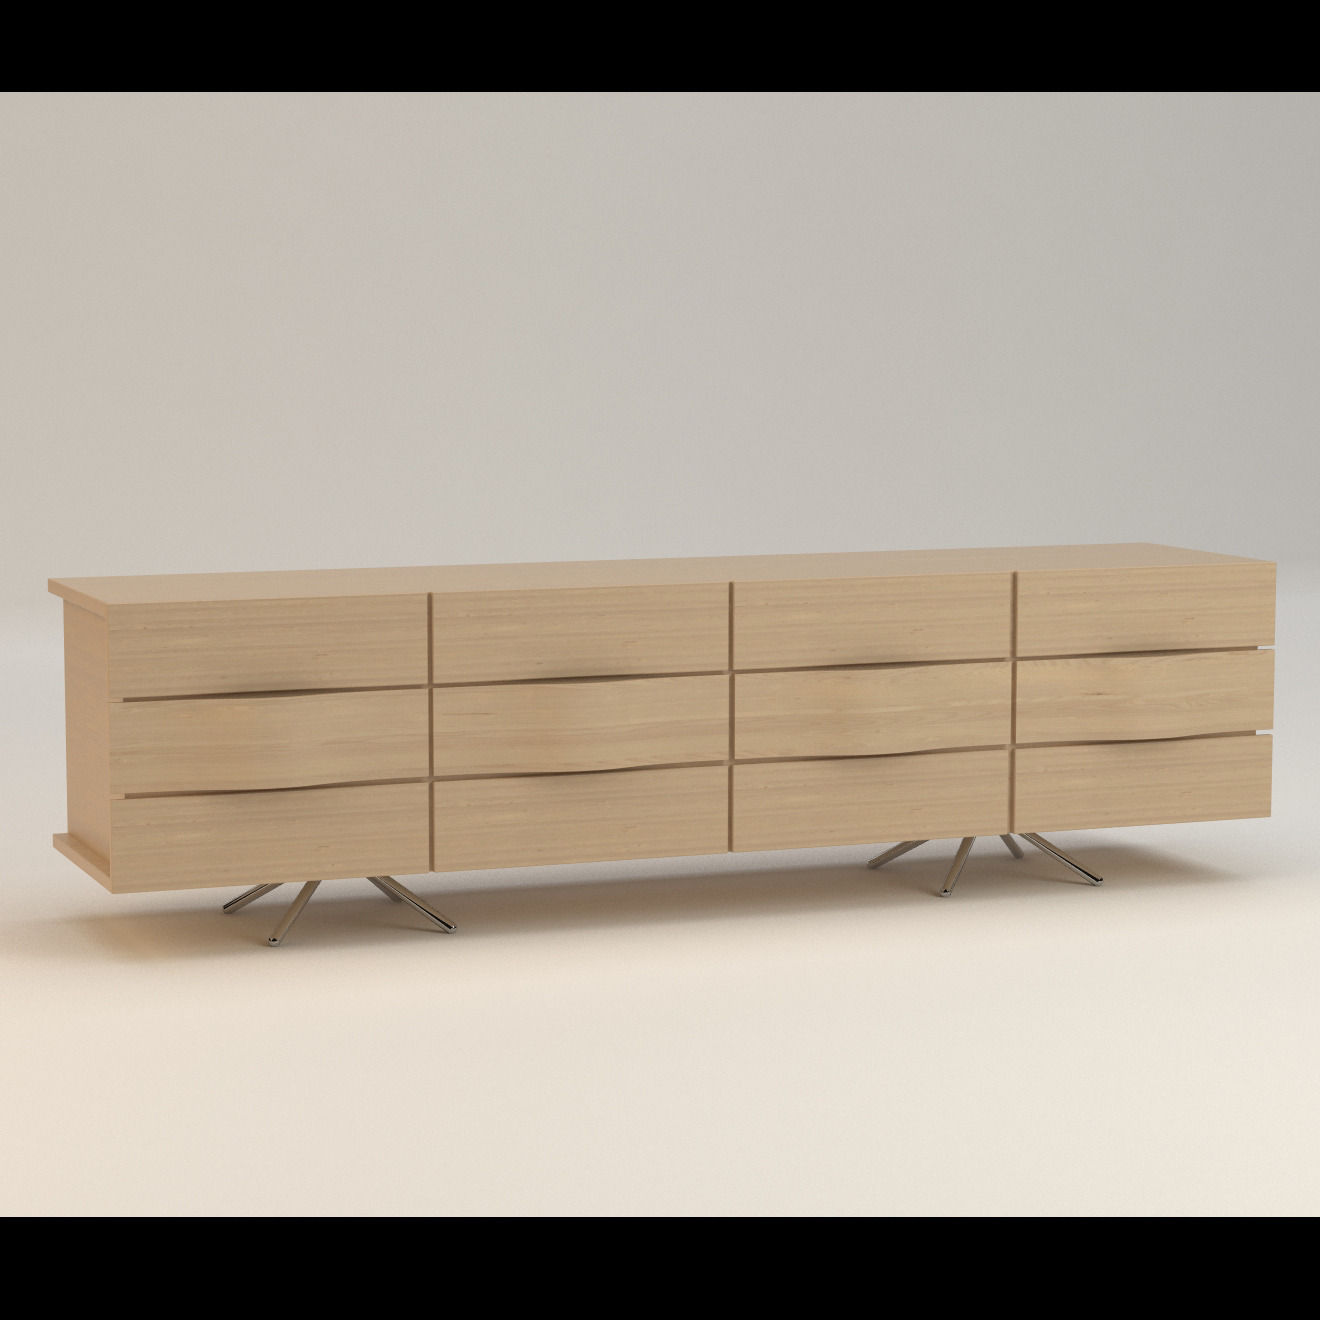 Boconcept ottawa sideboard 3d model max obj fbx for Sideboard 3d